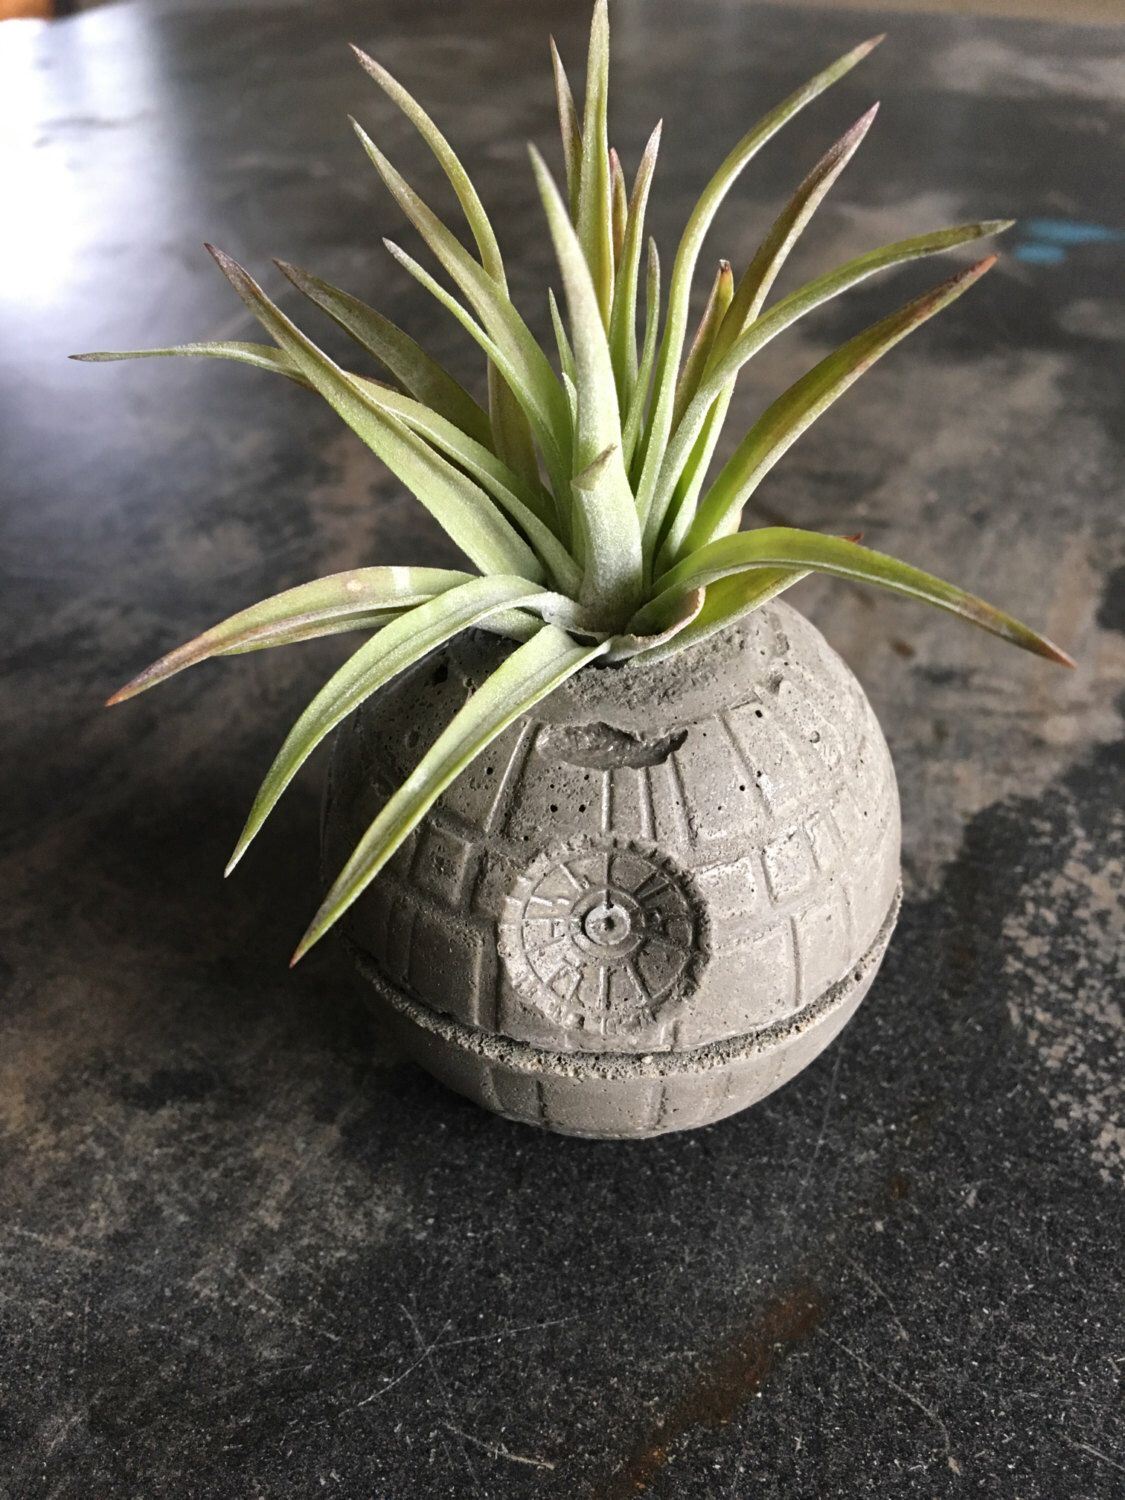 Merveilleux Small Death Star Concrete Planter   Single Planter   Includes Air PLant   Star  Wars   Office Decor By AnsonDesign On Etsy ...